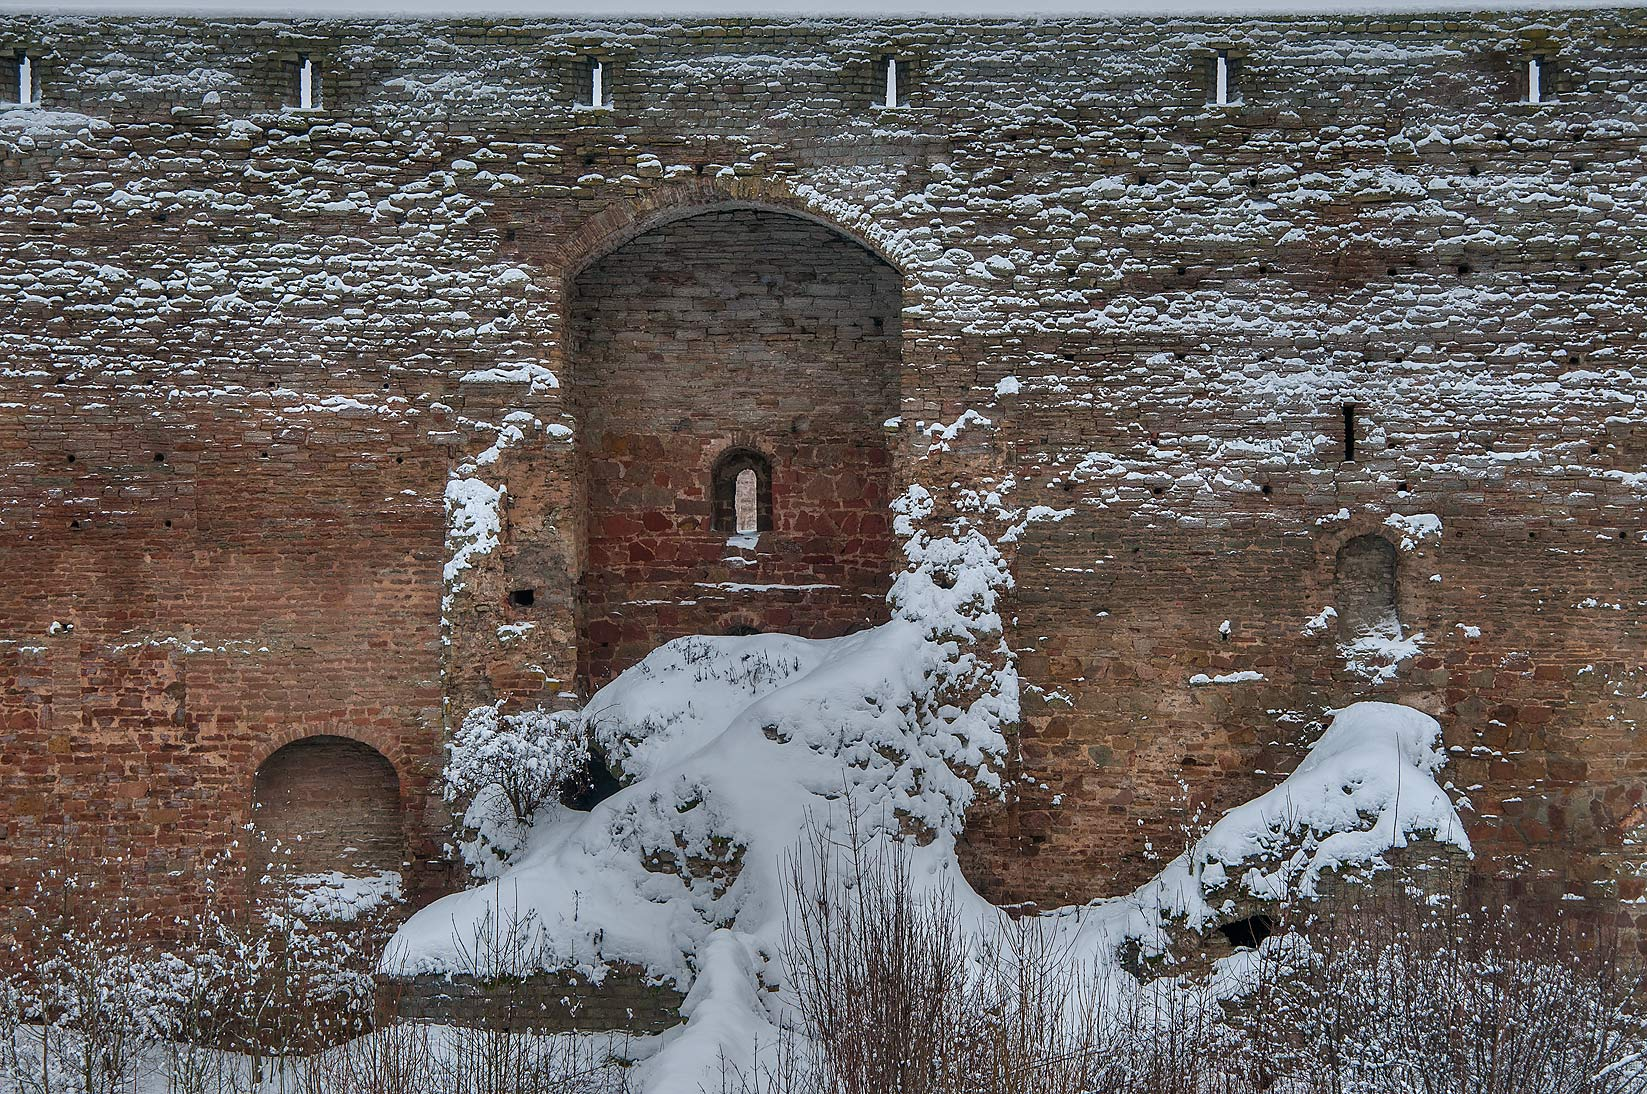 Ruins inside Ivan Gorod Fortress, view from walls. Leningrad Region, Russia